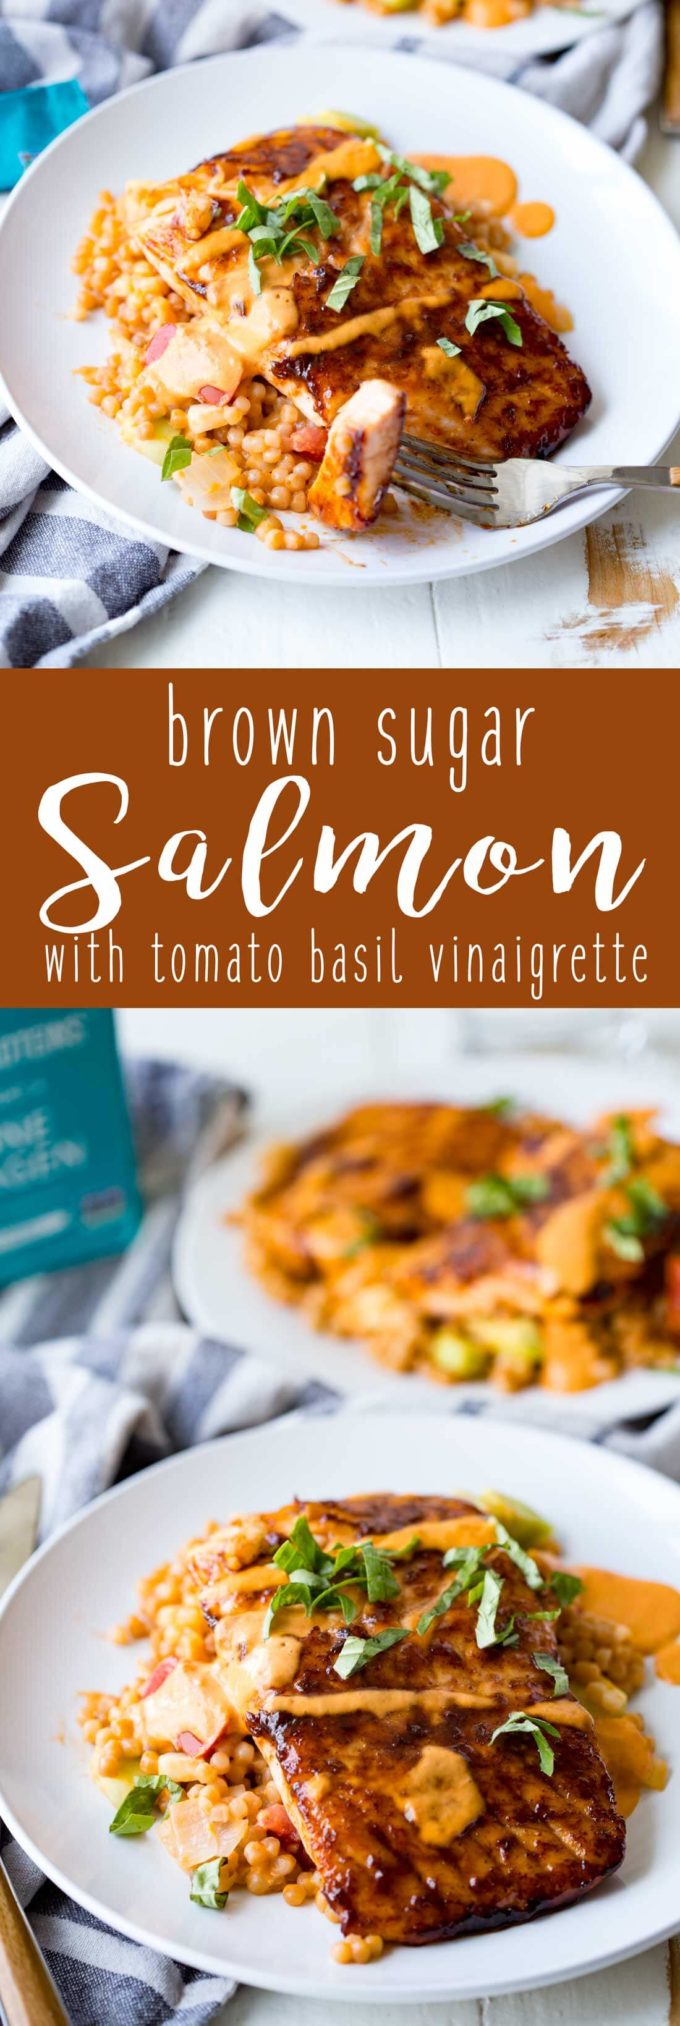 Brown sugar salmon, seared to perfection and served over a bed of cous cous and topped with tomato basil vinaigrette